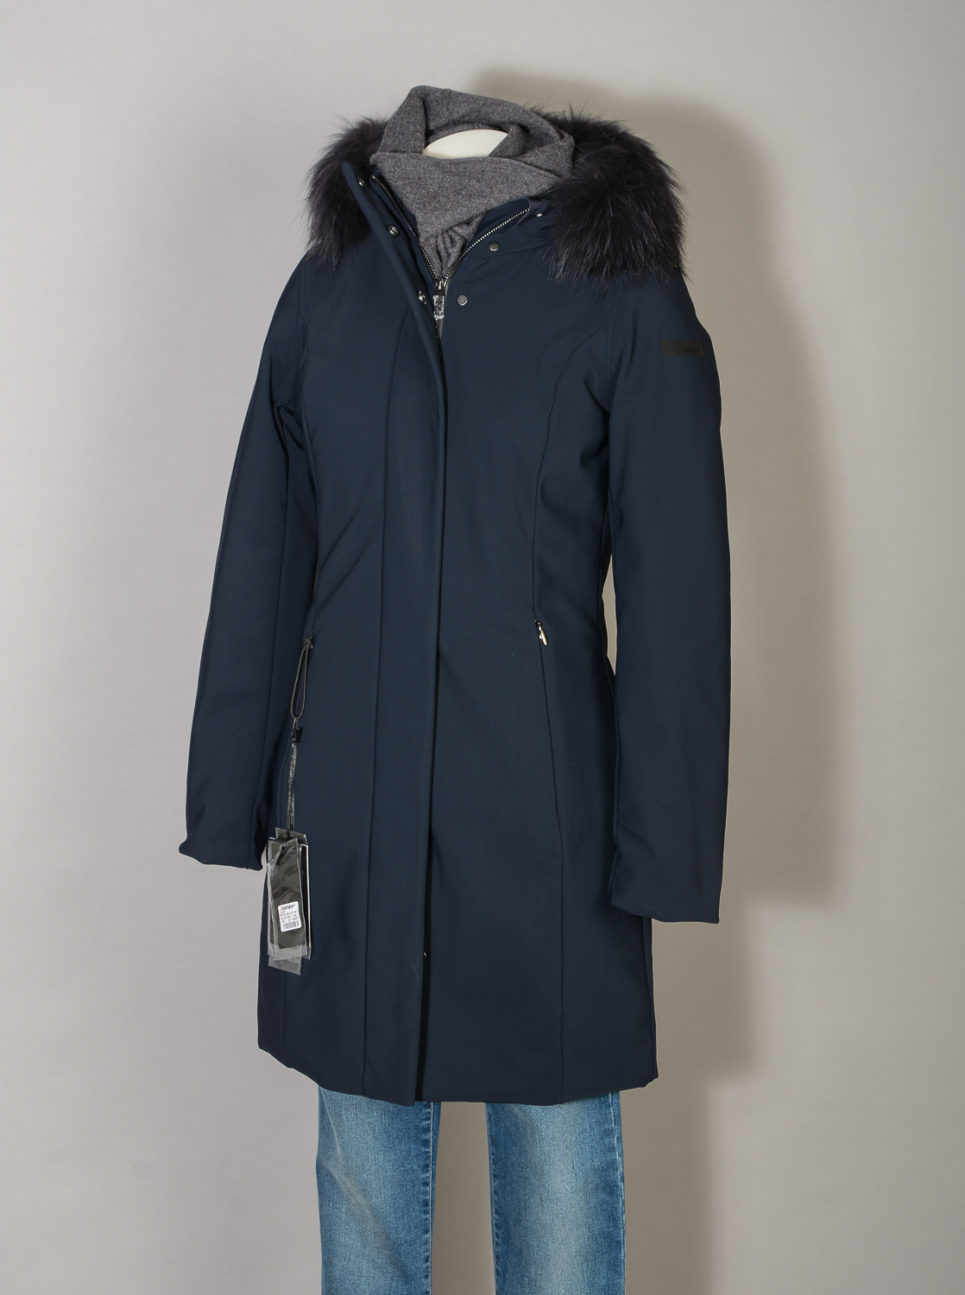 Winter Long Lady Fur T W19501FT Parka Donna RRD con Pelliccia colore 60 Blue Black jpg (6)